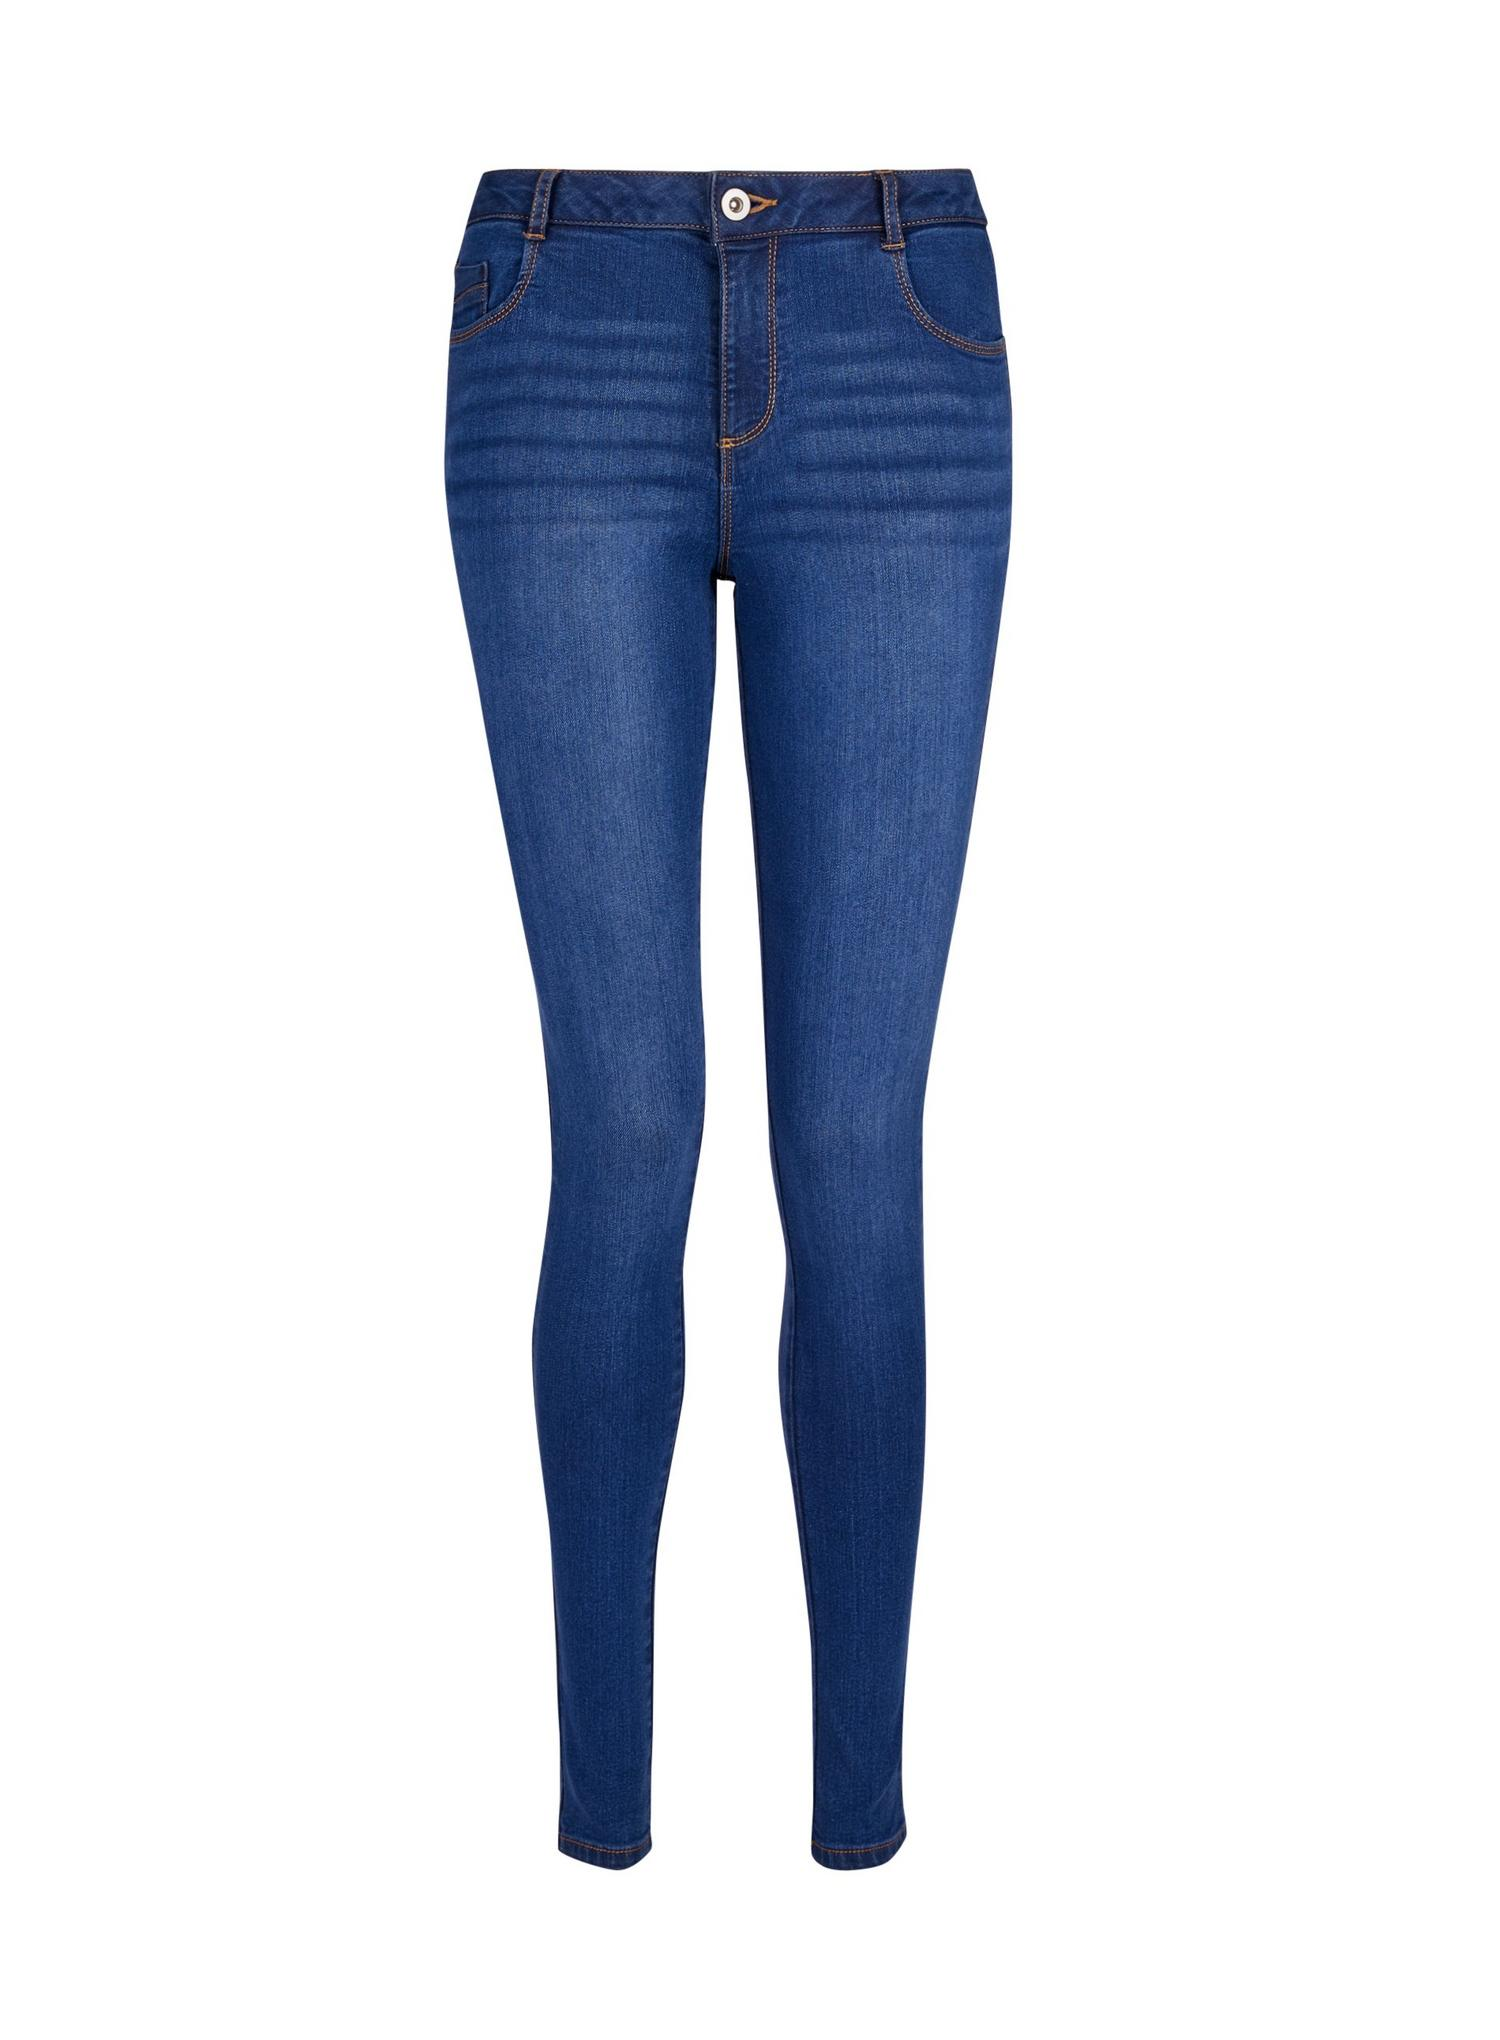 106 Midwash Regular Ellis Skinny Jeans image number 2